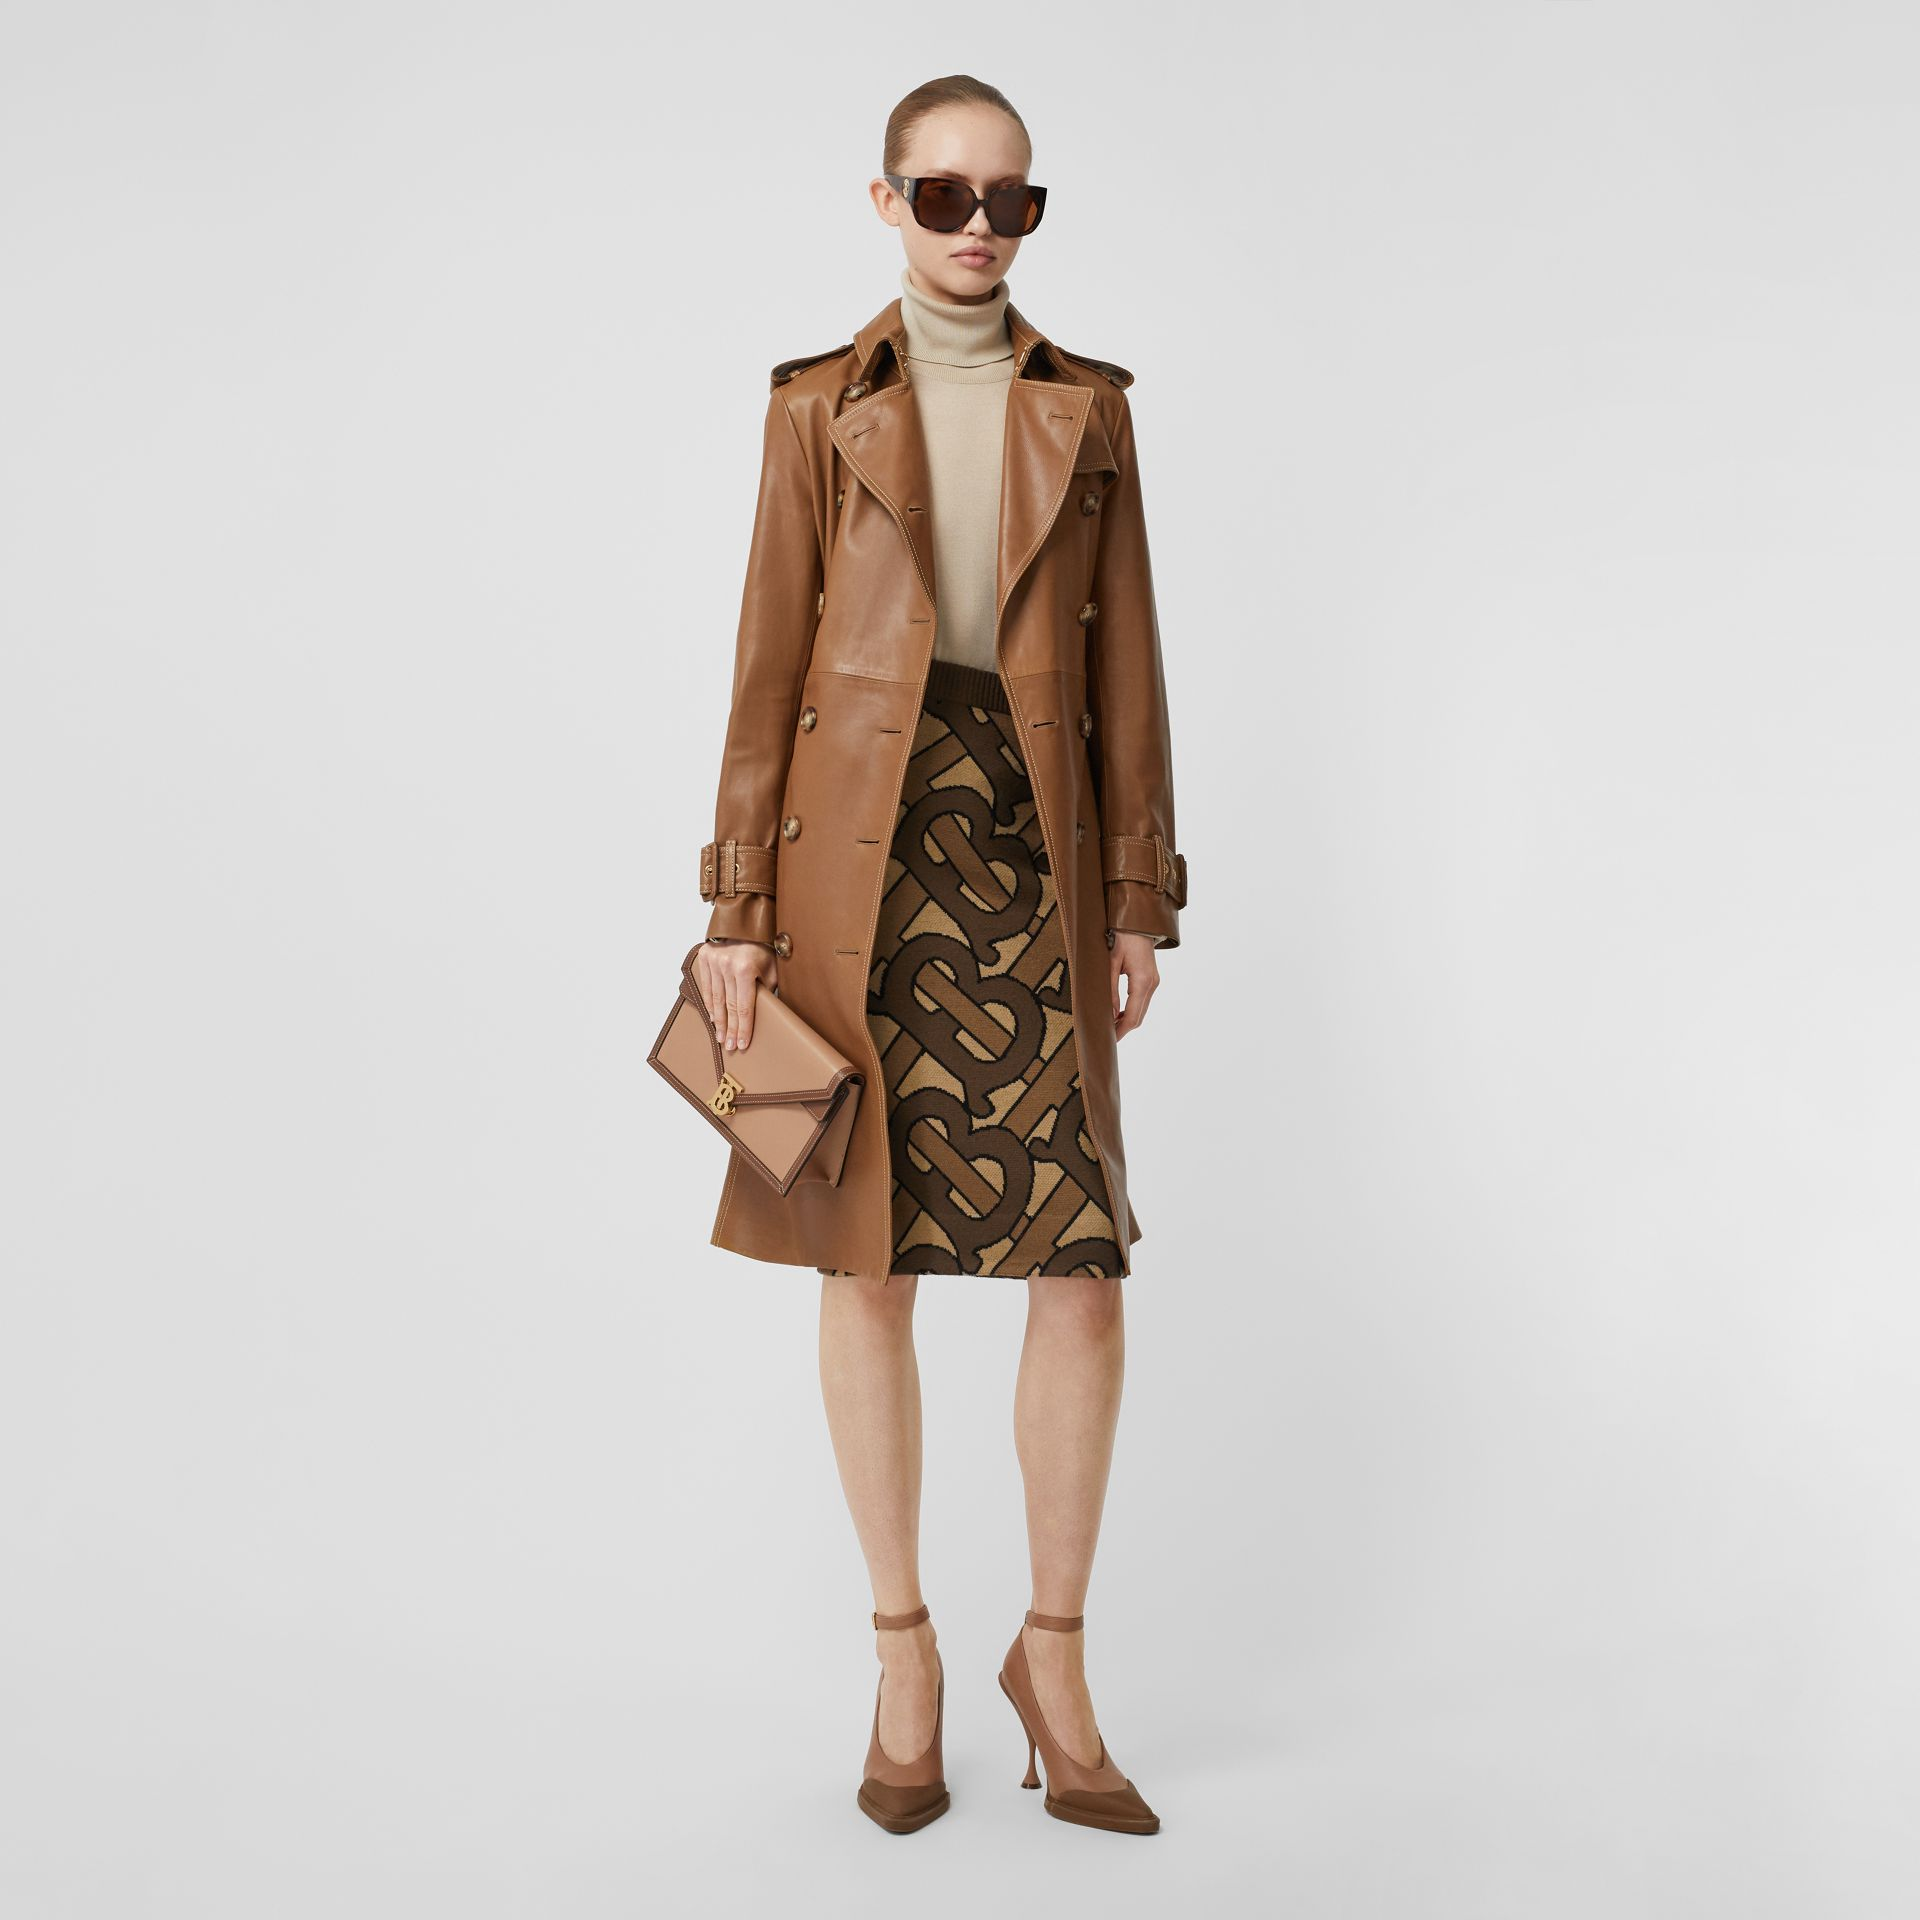 Monogram Intarsia Wool Pencil Skirt in Bridle Brown - Women | Burberry Australia - gallery image 6